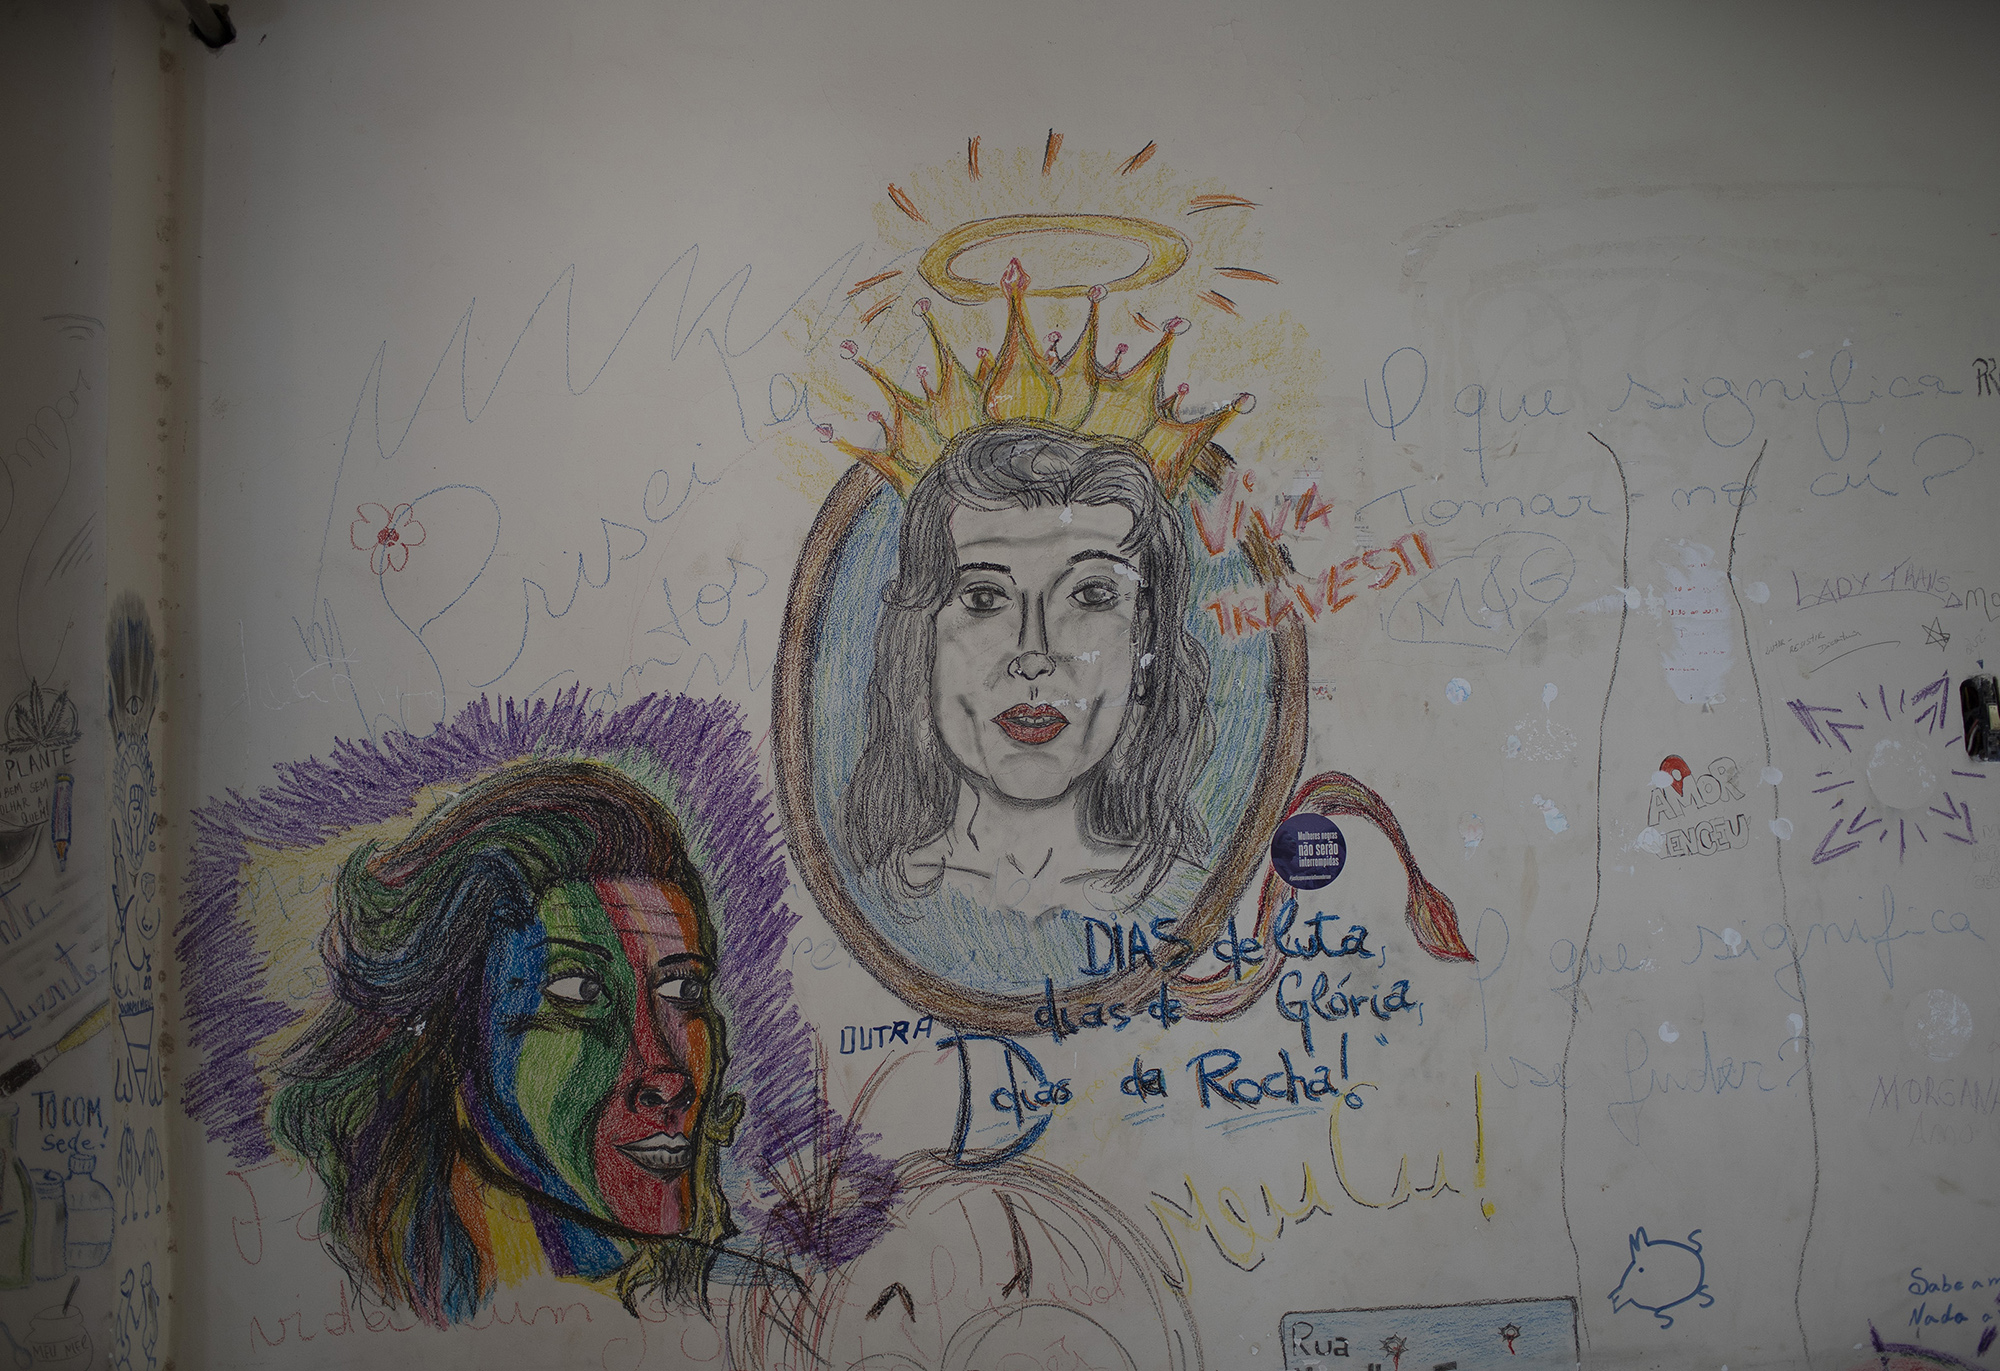 Drawings and messages honoring the transgender community decorate a wall of at the squat known as Casa Nem, occupied by members of the LGBTQ community who are in self-quarantine as a protective measure against the new coronavirus, in Rio de Janeiro, Brazil, Friday, May 29, 2020. New residents during the pandemic have to isolate on one of the building's floors for 15 days to ensure they don't develop symptoms before fully joining the community.